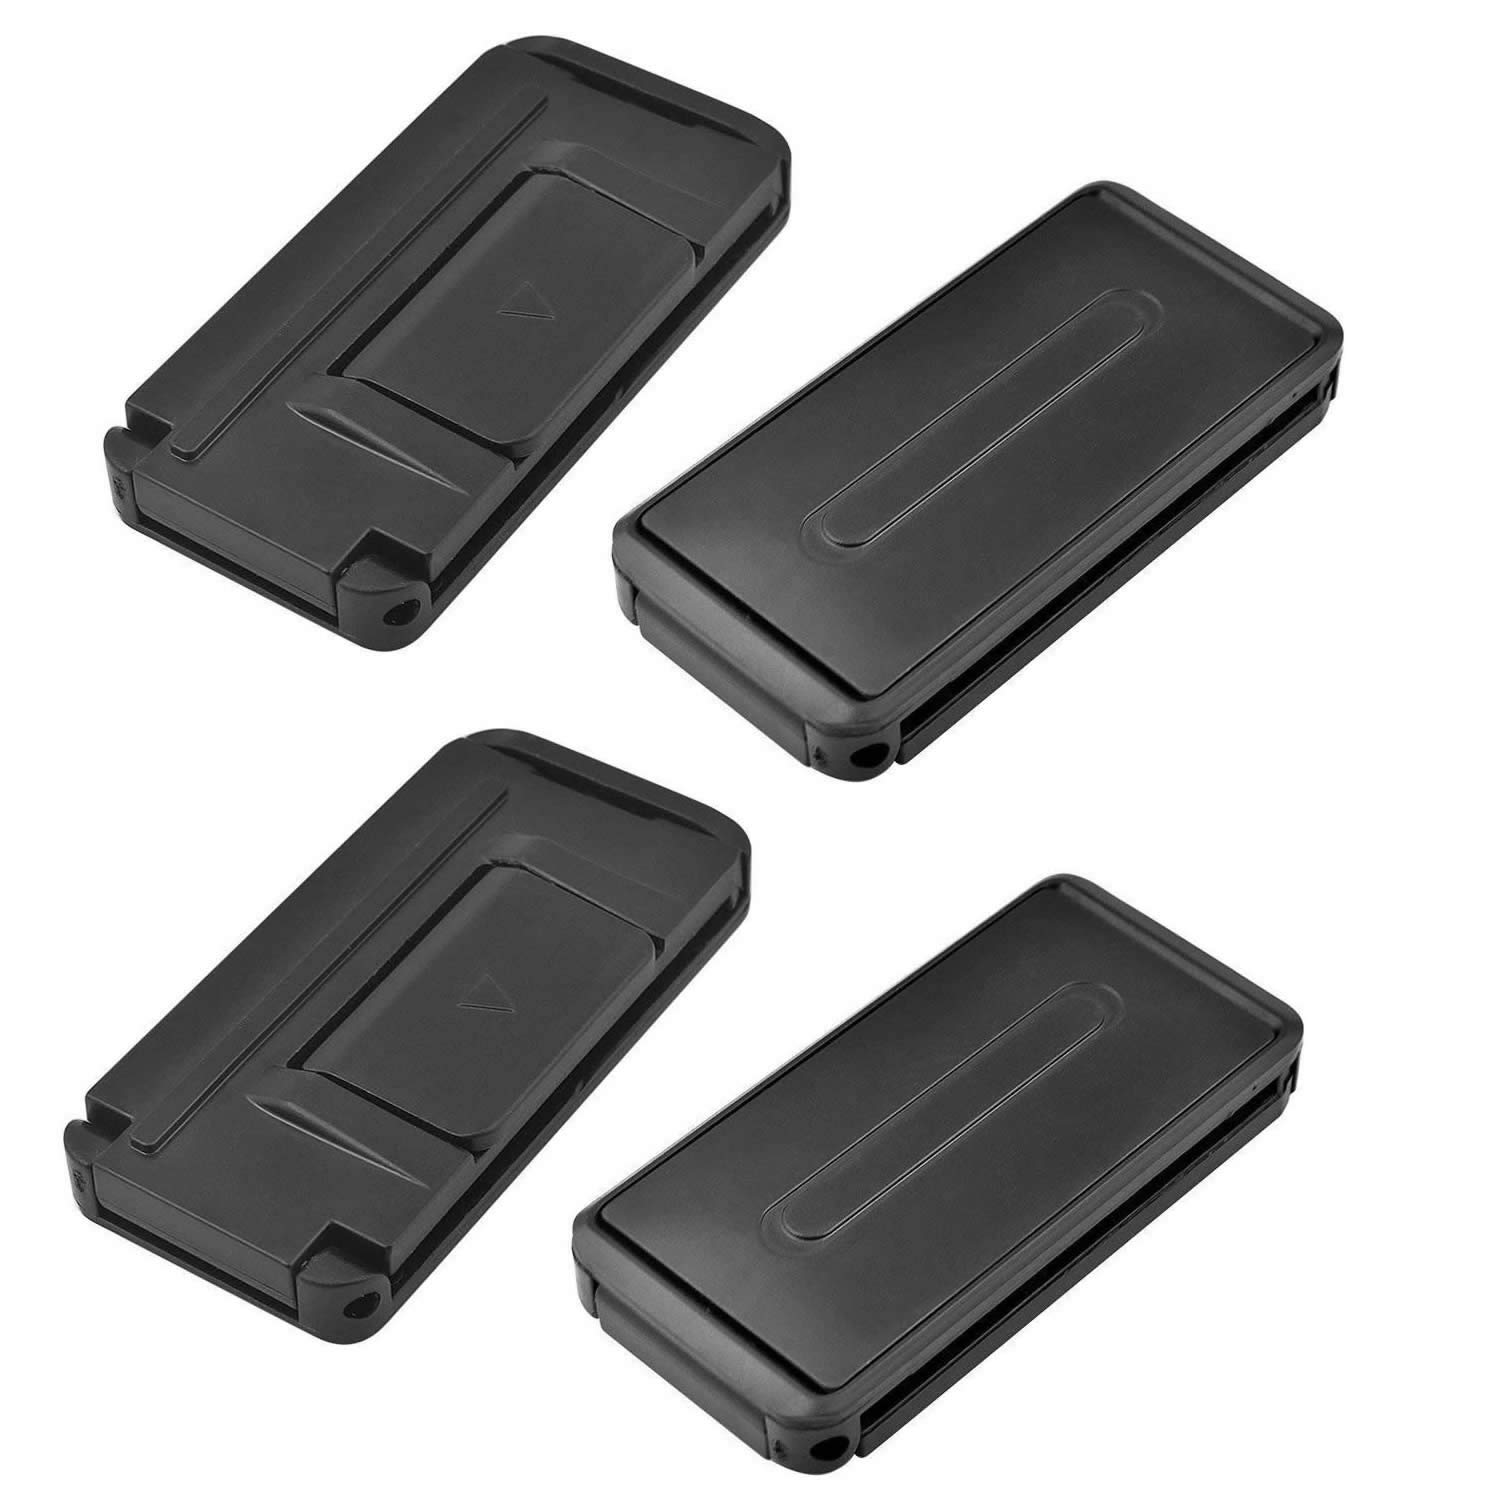 Car Seat Belt Adjuster,Seatbelt Clips - Provides Comfort for Neck and Shoulder While Driving! (4Pcs Black) AiMiiNiii